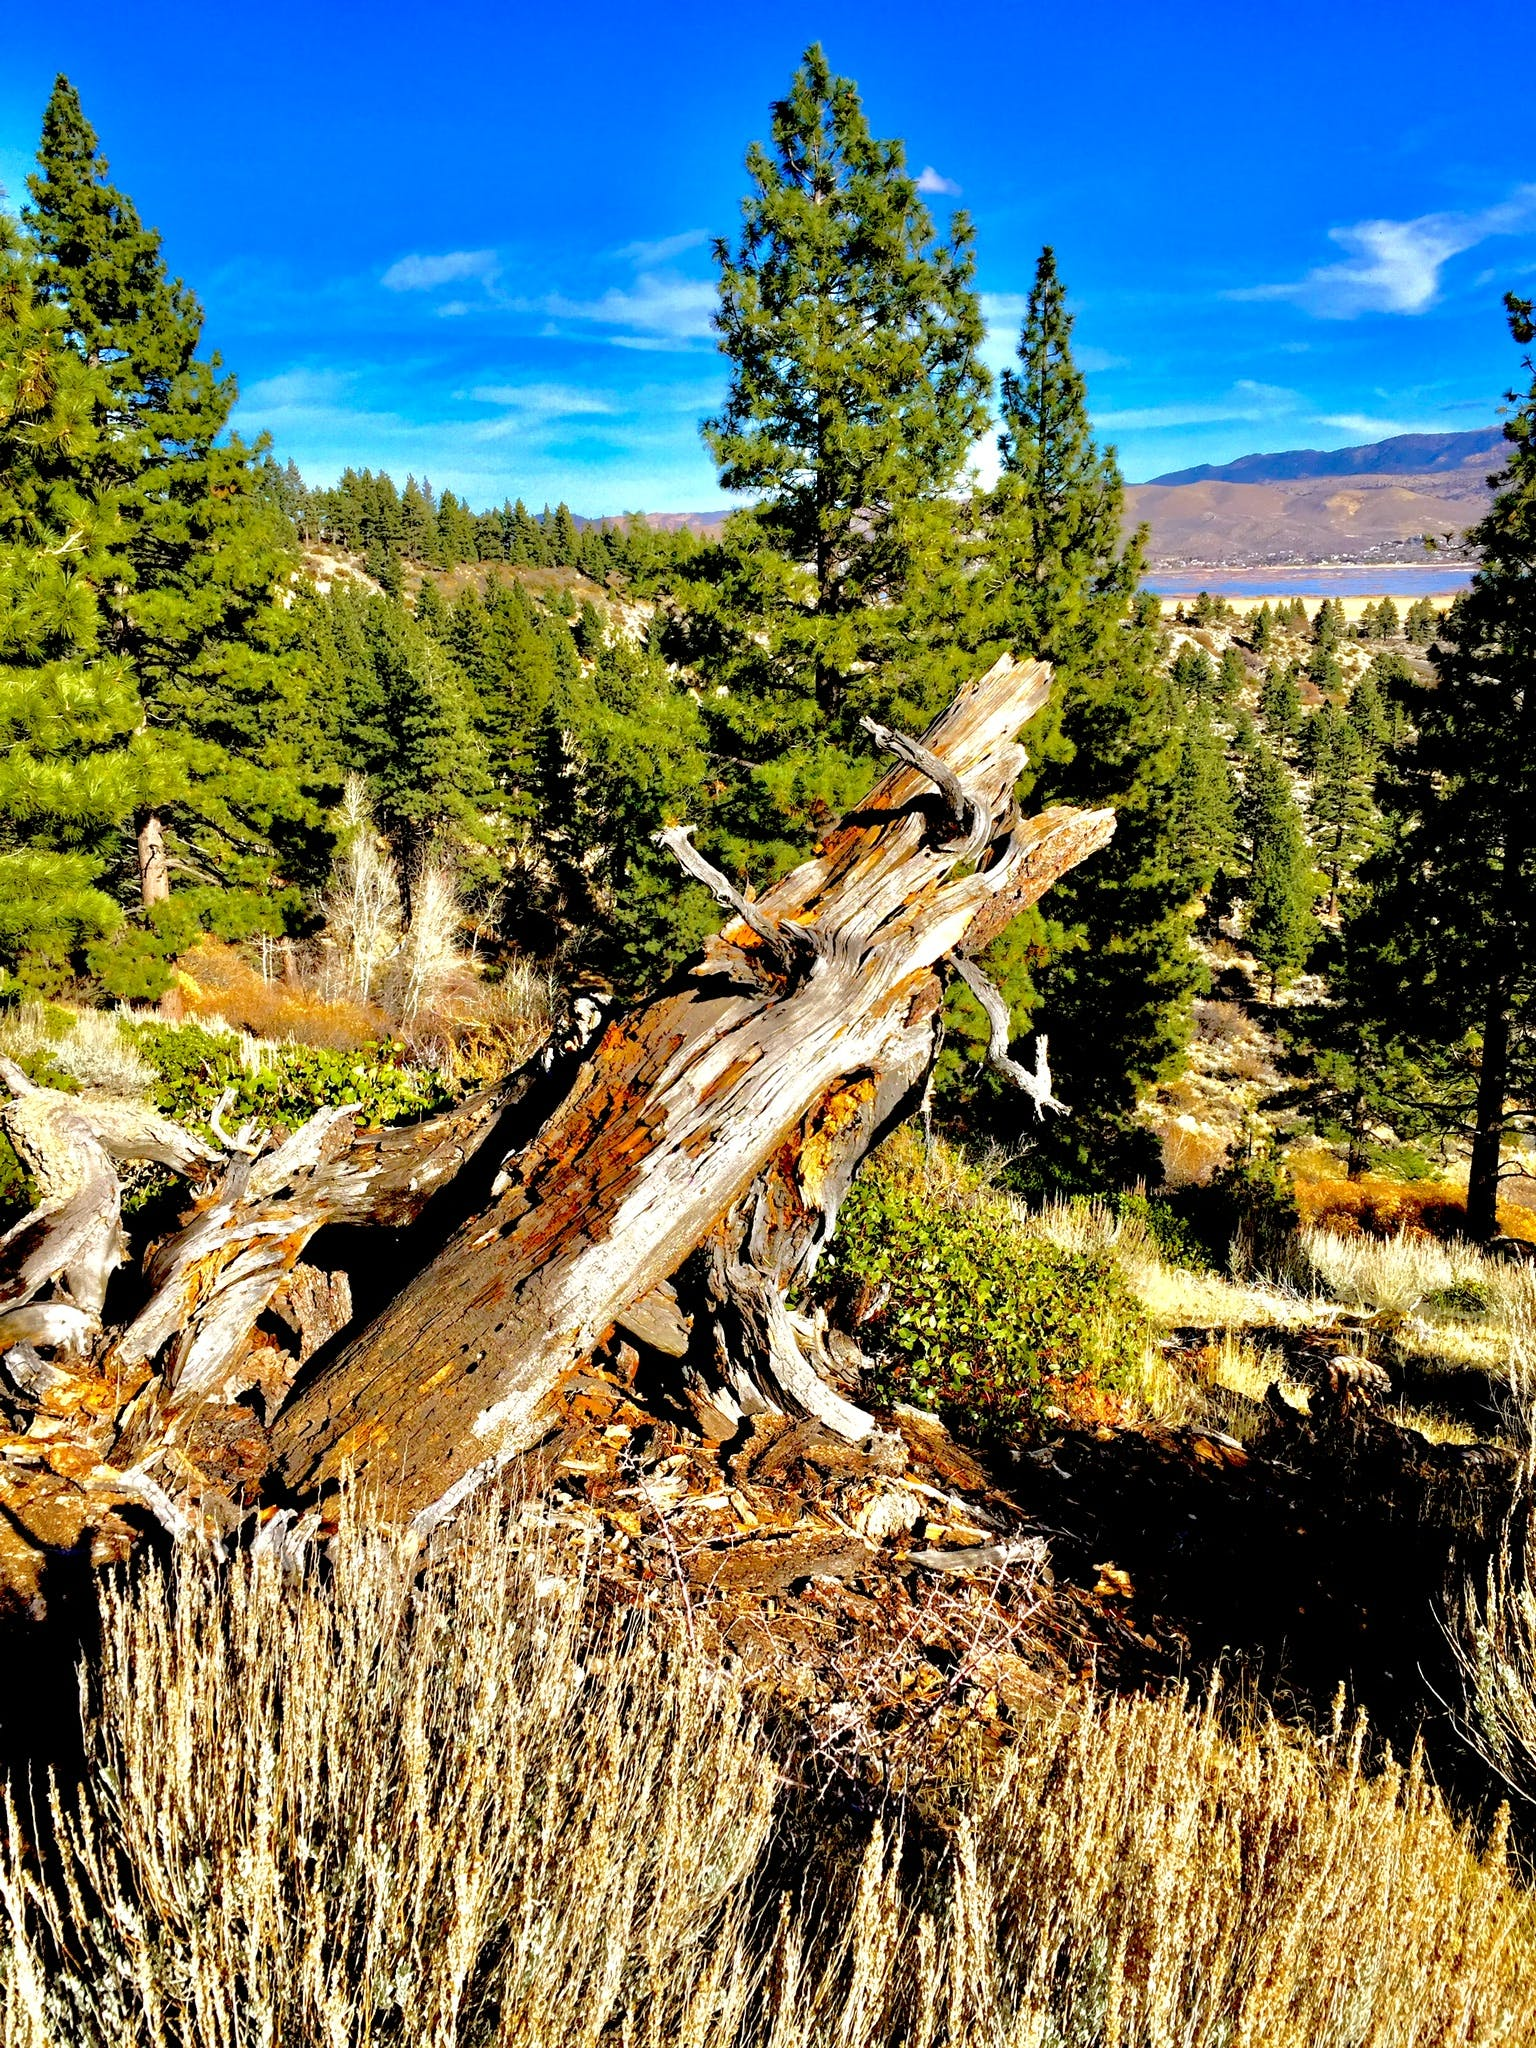 Brown Tree Log Near Pine Tree